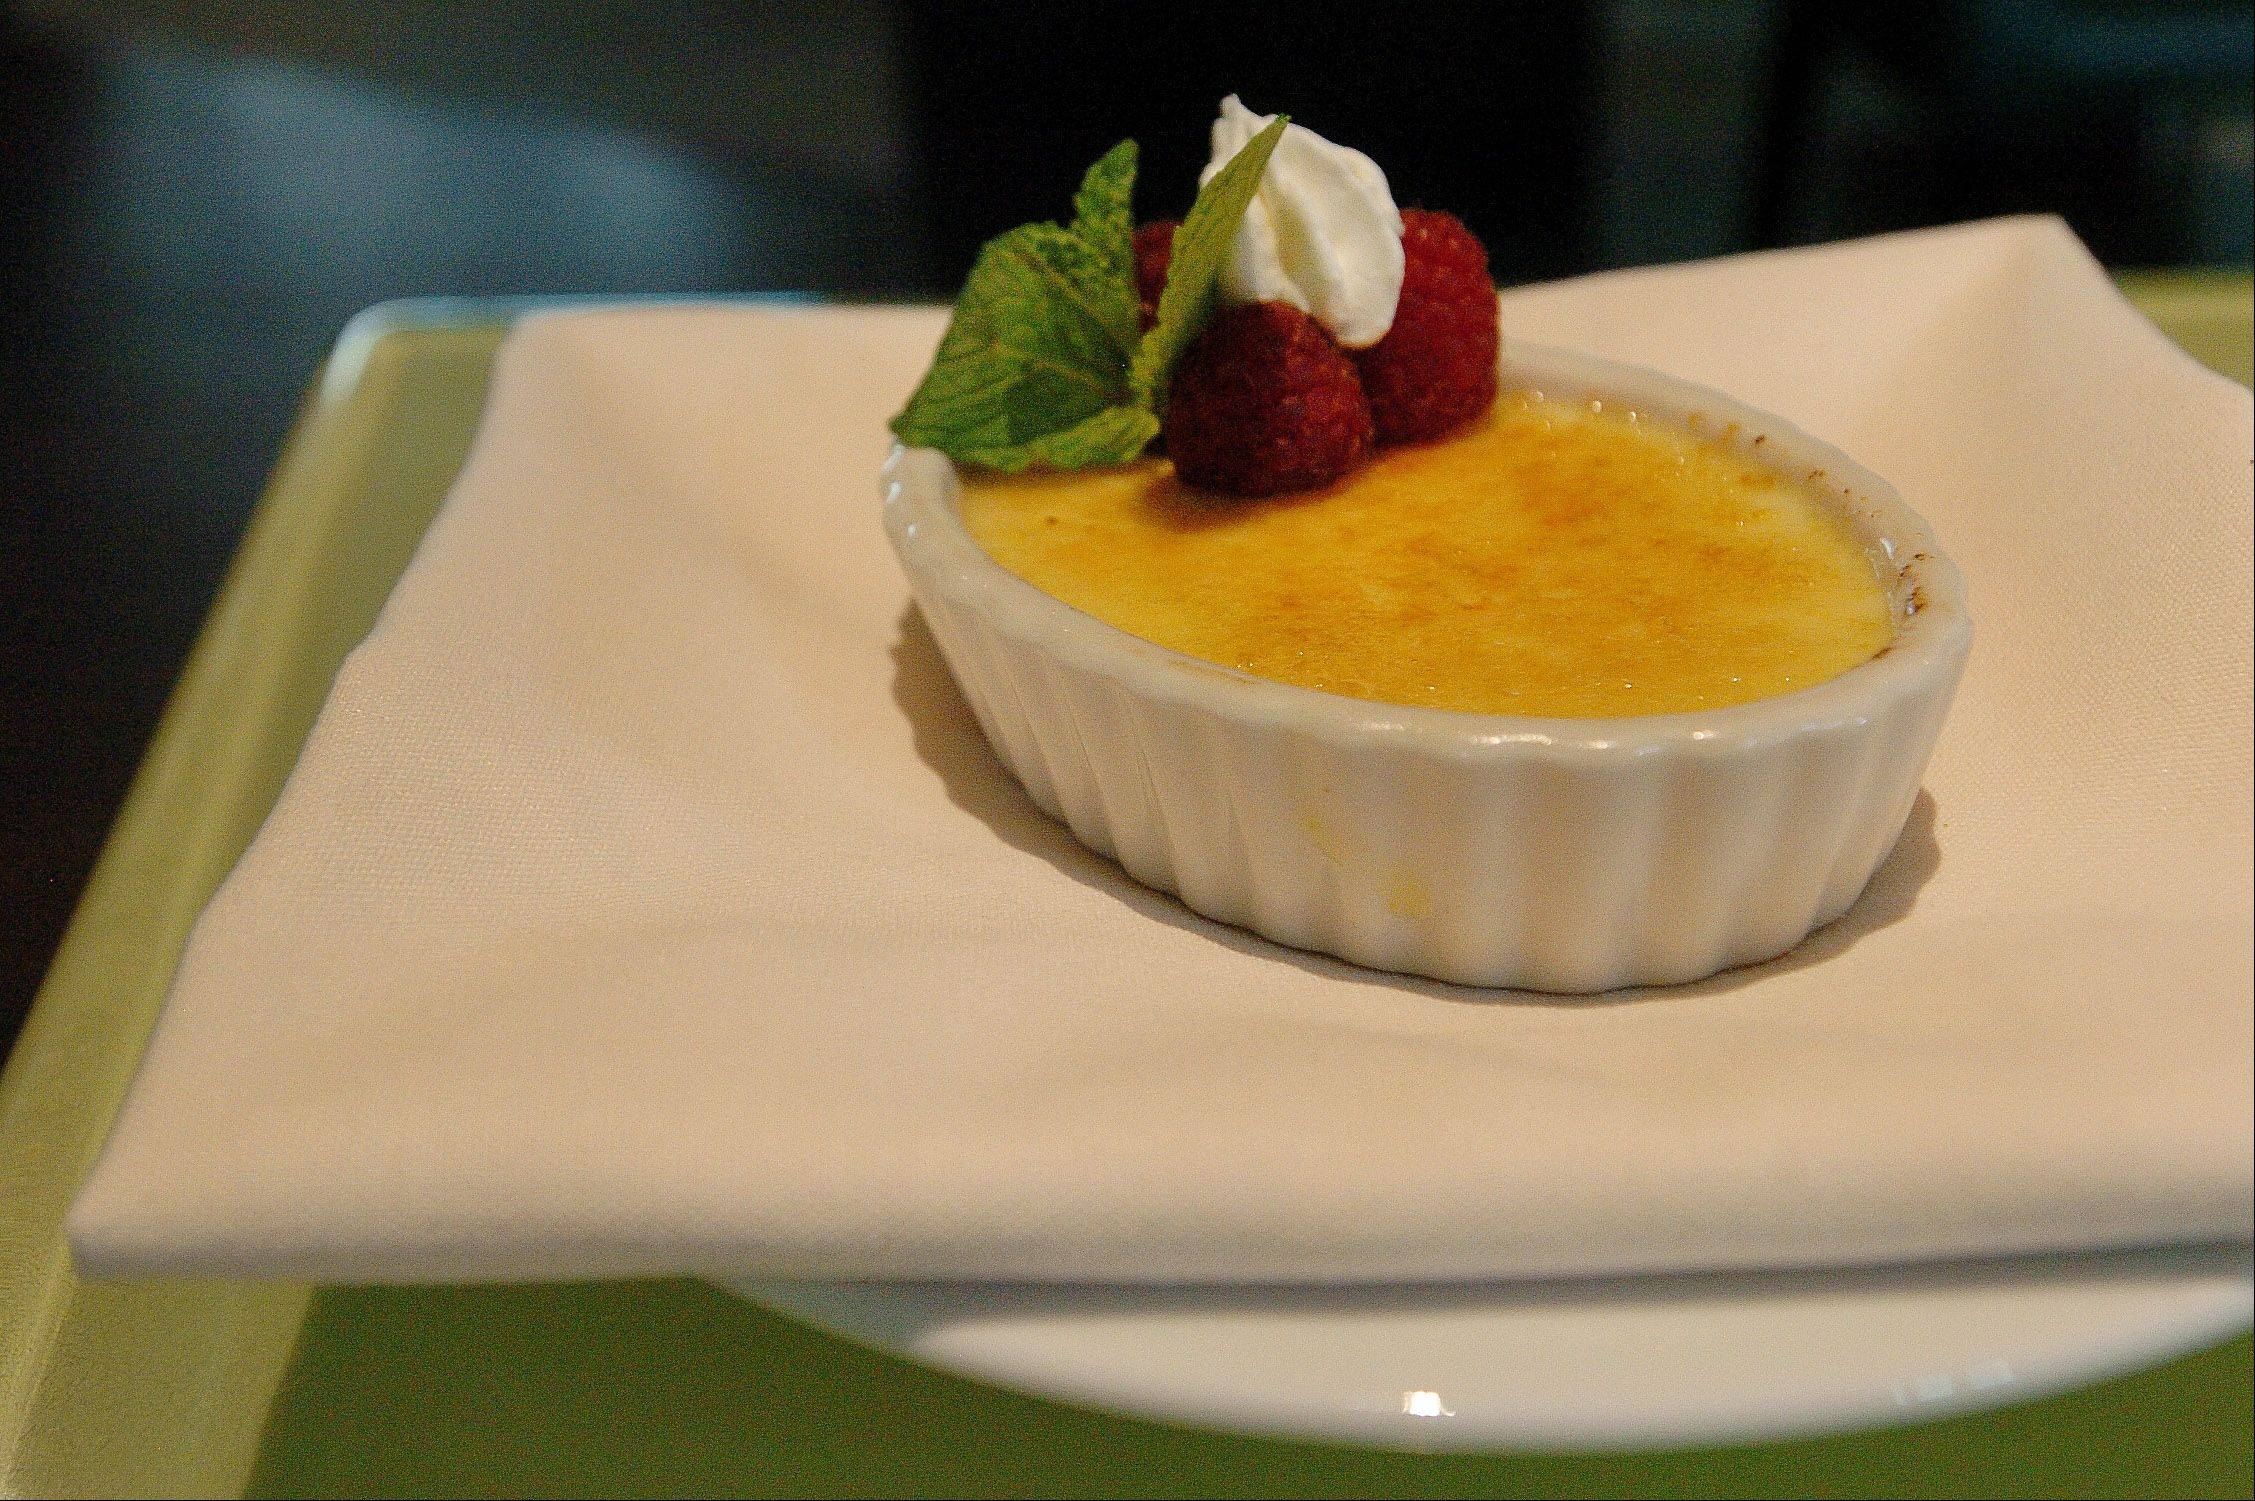 Pumpkin Creme Brulee is one of the seasonal desserts offered at Fresh 1800 in Schaumburg.